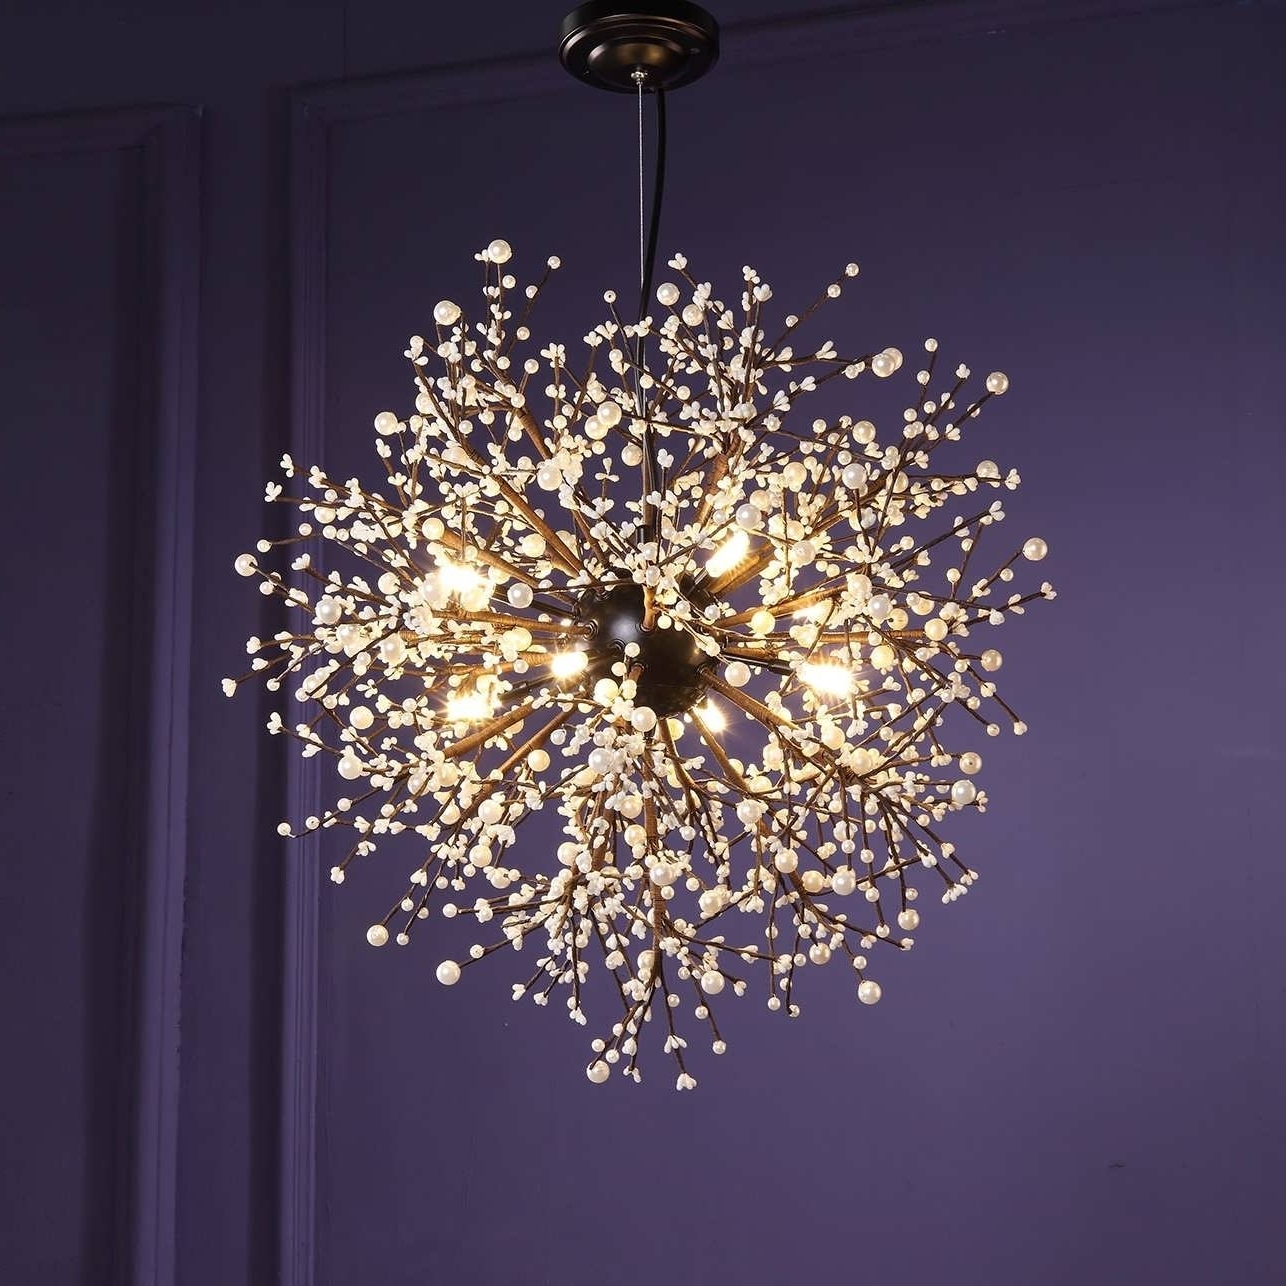 Popular Chandeliers Design : Marvelous Amazing Glass Ball Chandelier Light Pertaining To Turquoise Crystal Chandelier Lights (View 13 of 20)